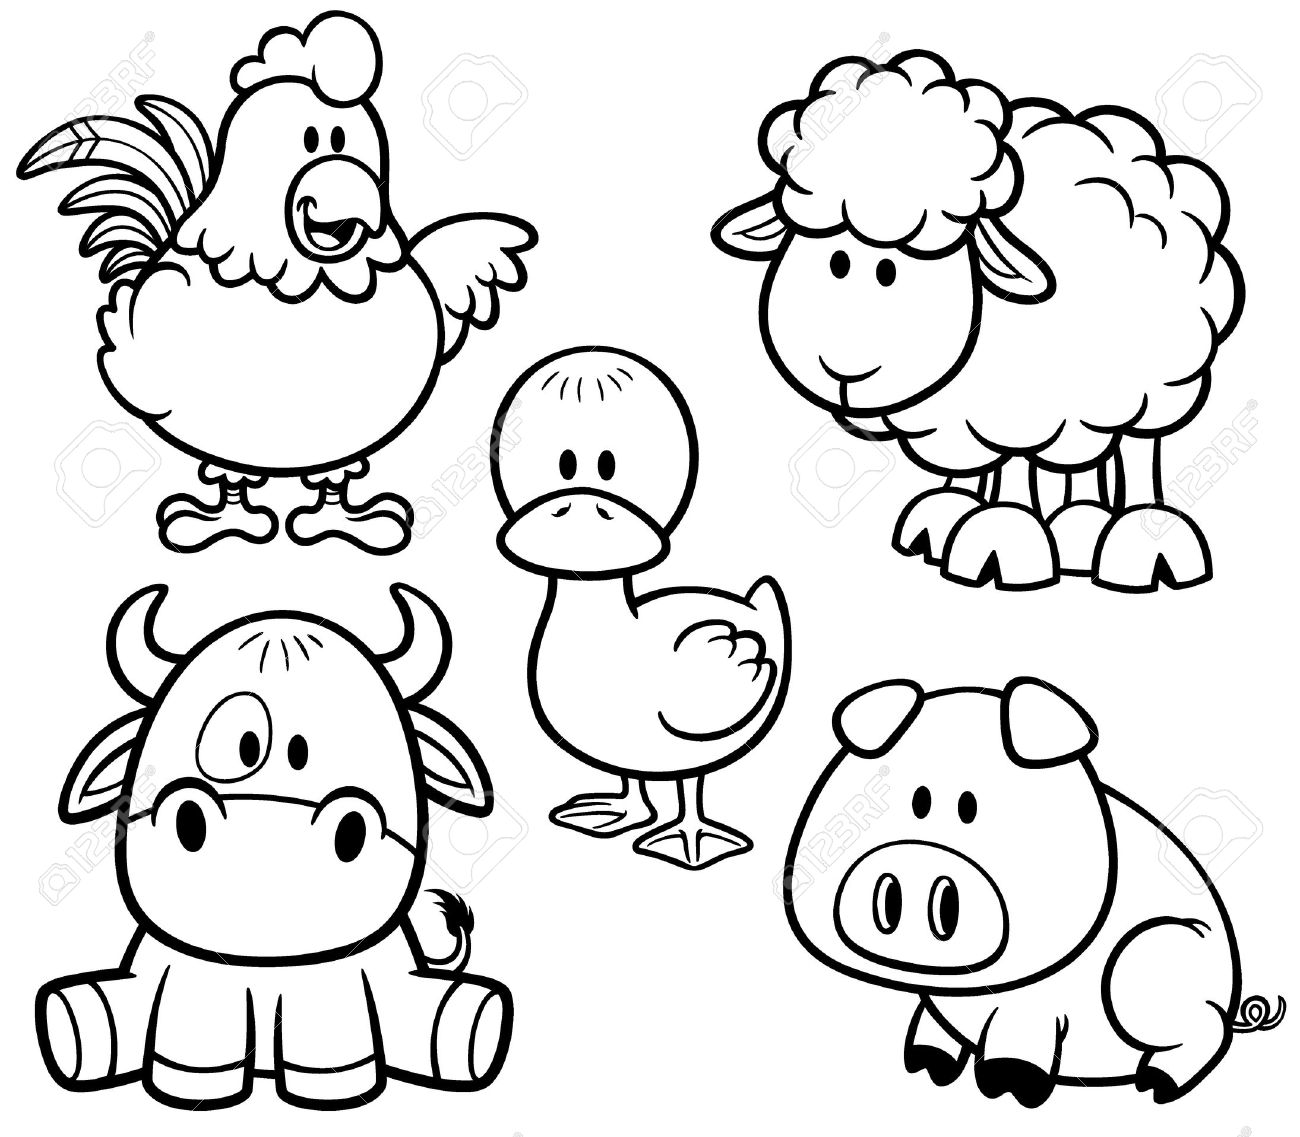 animal coloring pages for kids cartoon animals all coloring page wecoloringpagecom kids coloring for pages animal